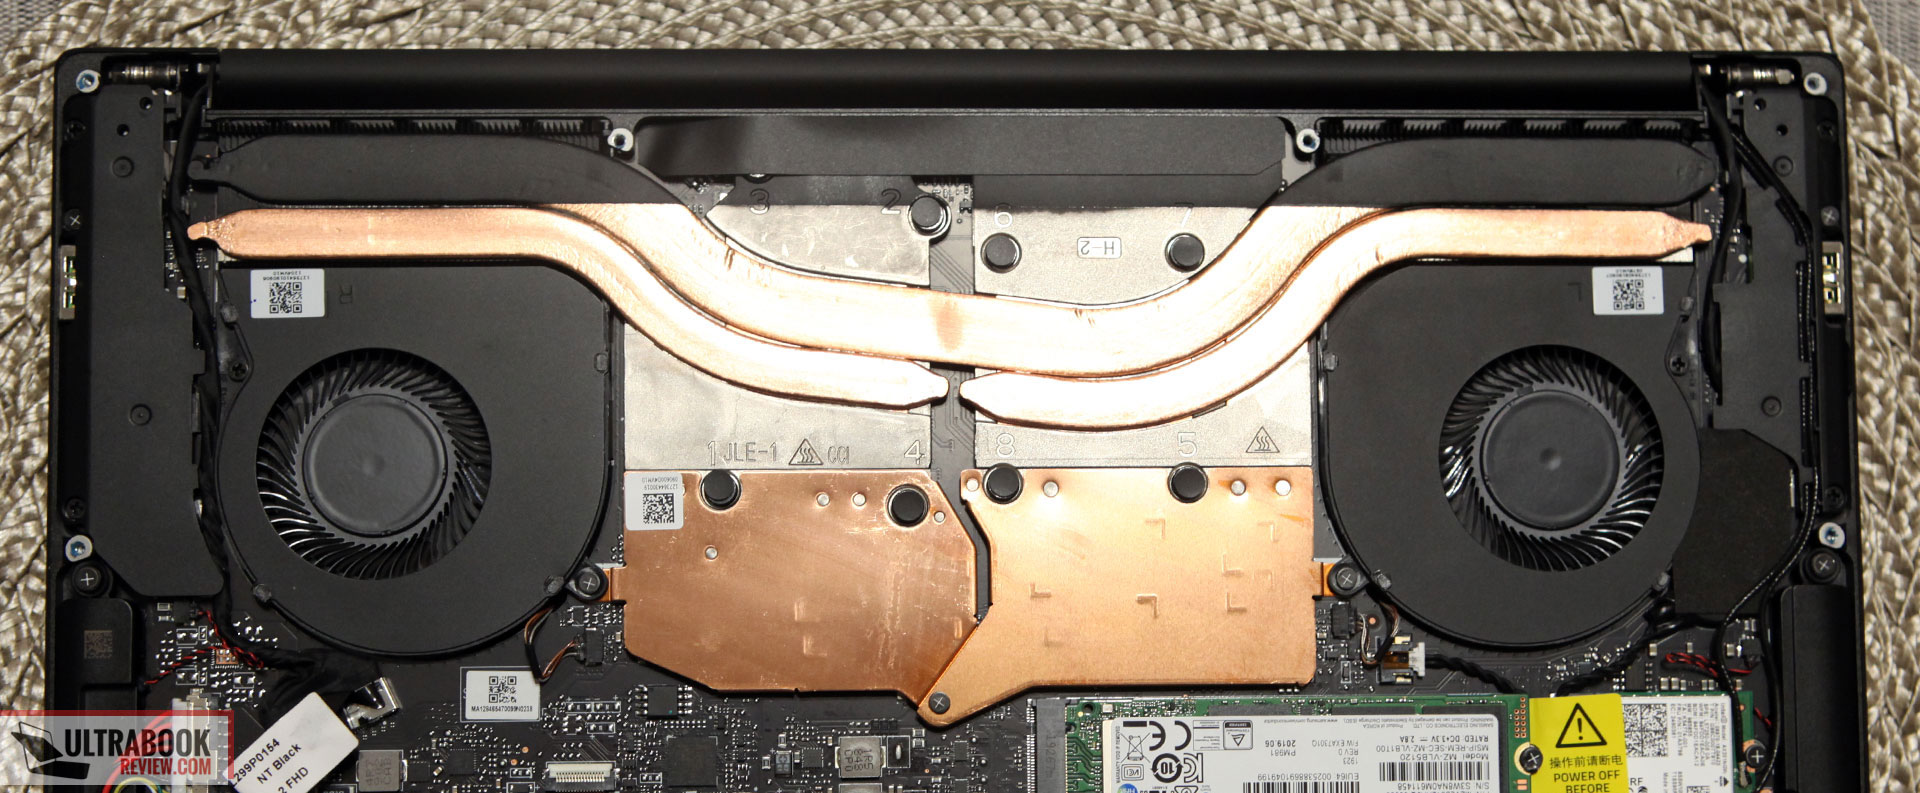 Cooling and thermal module